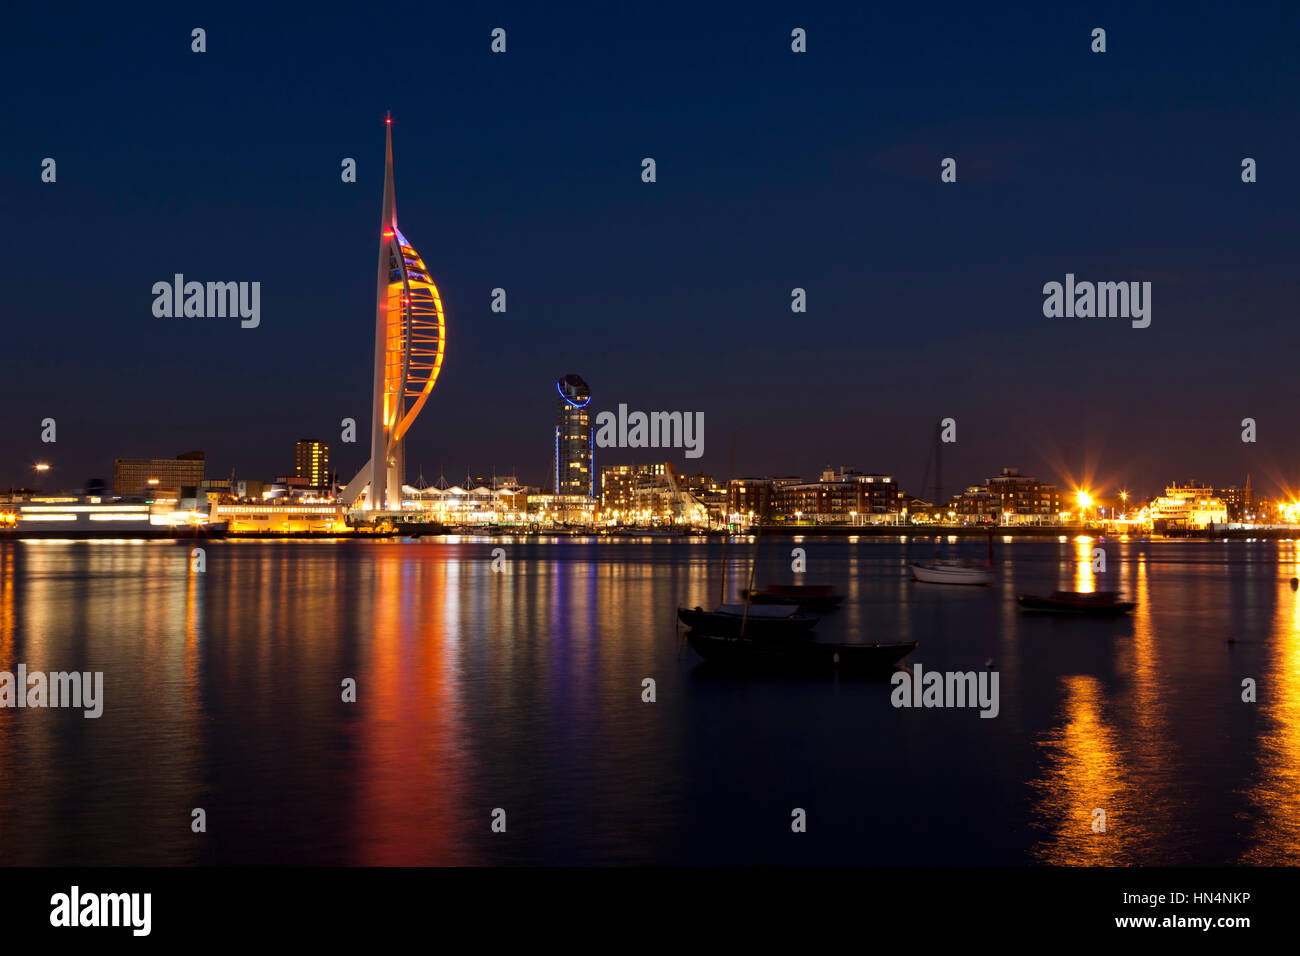 Portsmouth, Hampshire, UK - May 14, 2014: Waterfront of Portsmouth with Spinnaker Tower and docklands at night Stock Photo